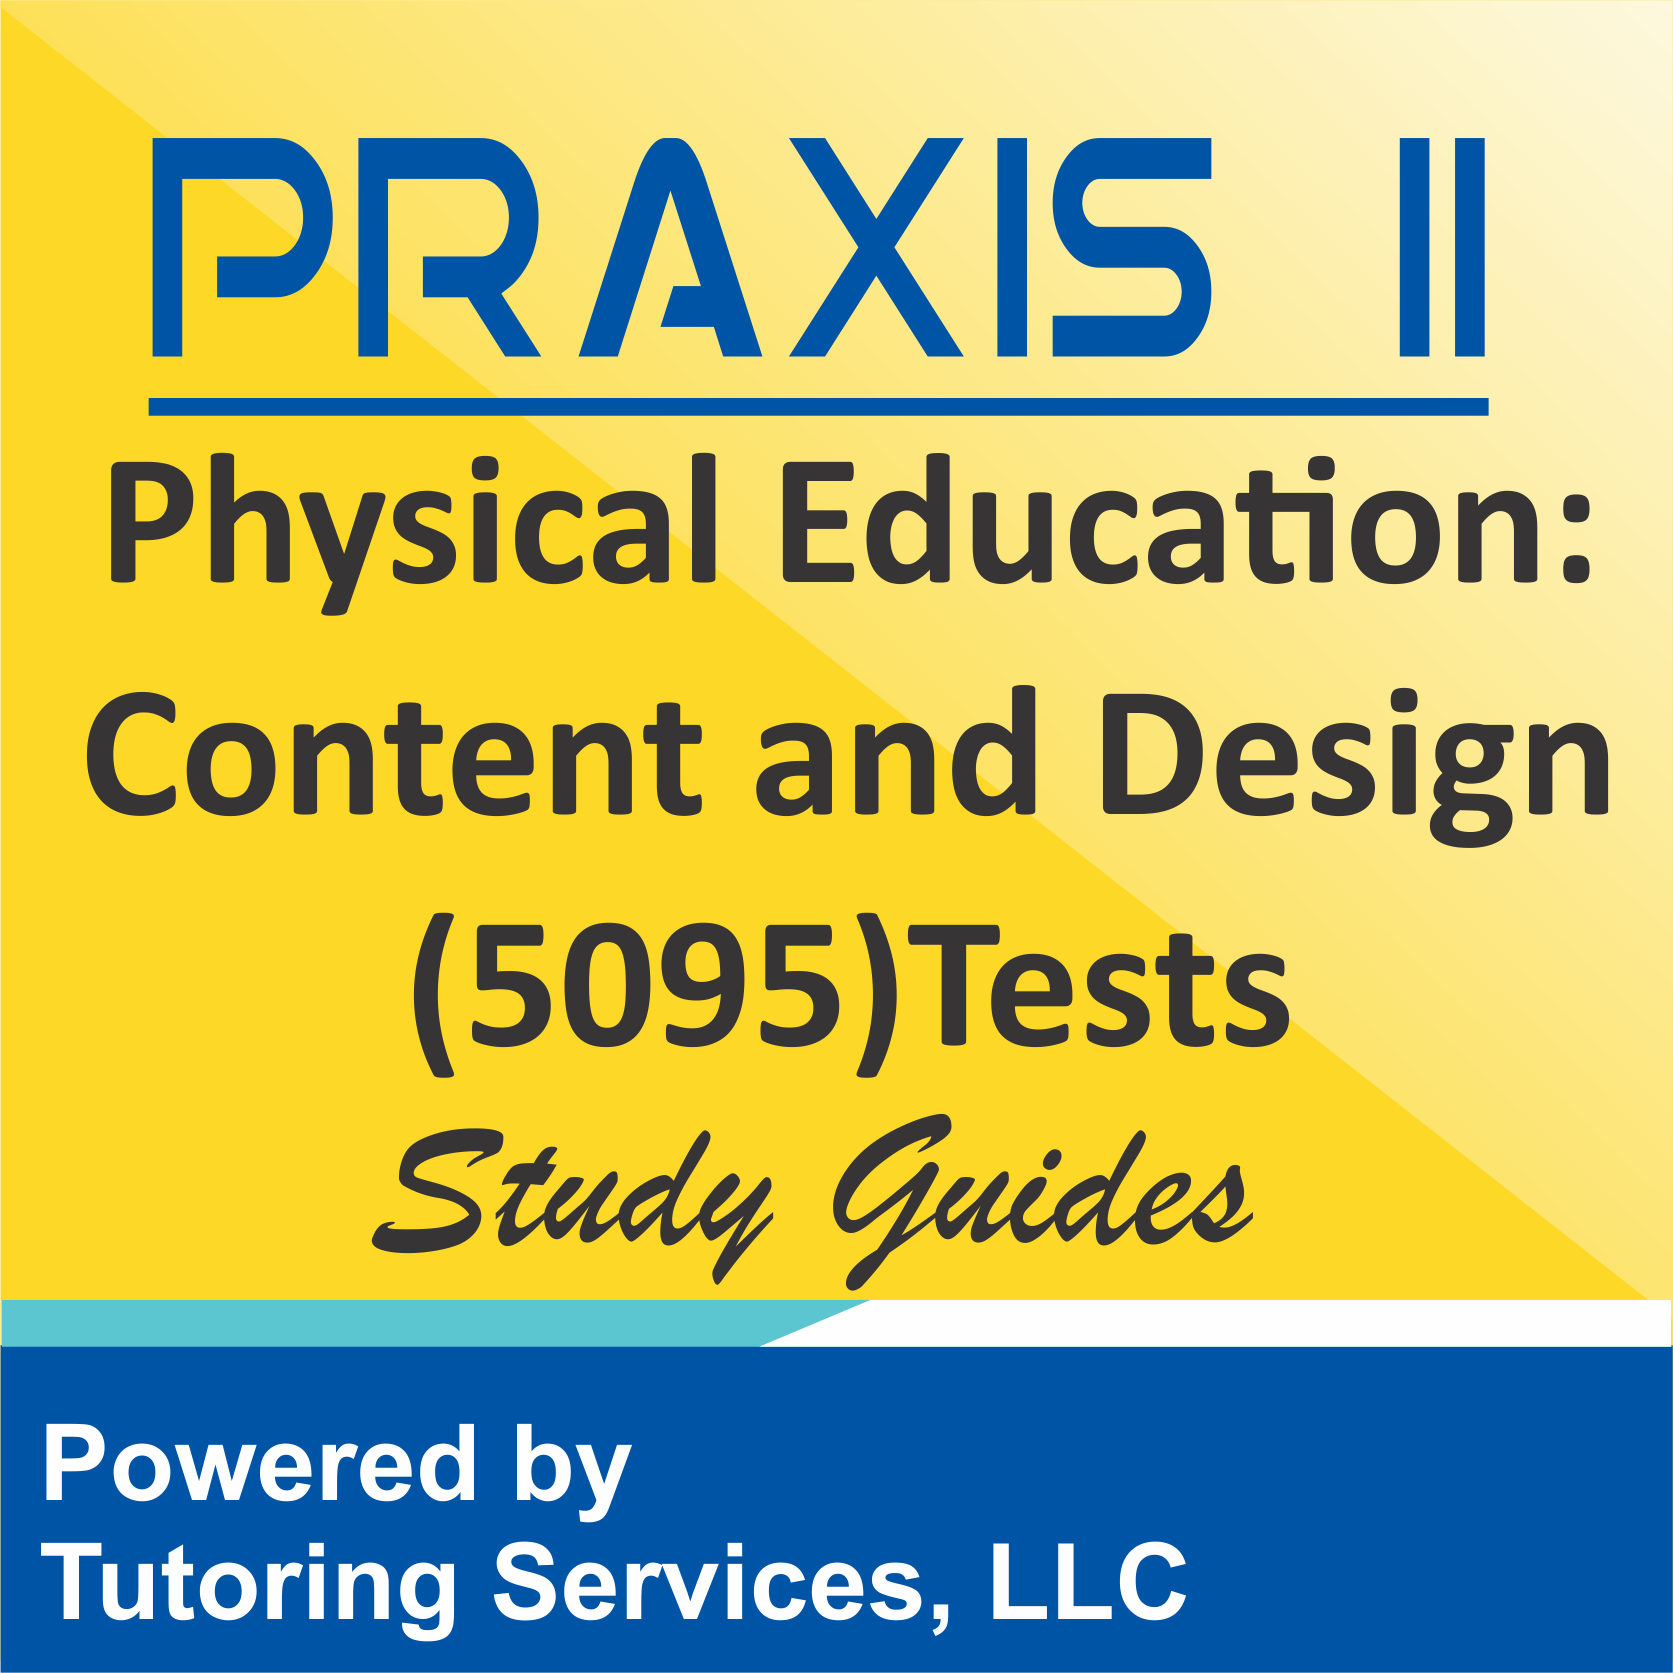 Praxis II Physical Education: Content and Design (5095) Subject Test Syllabus